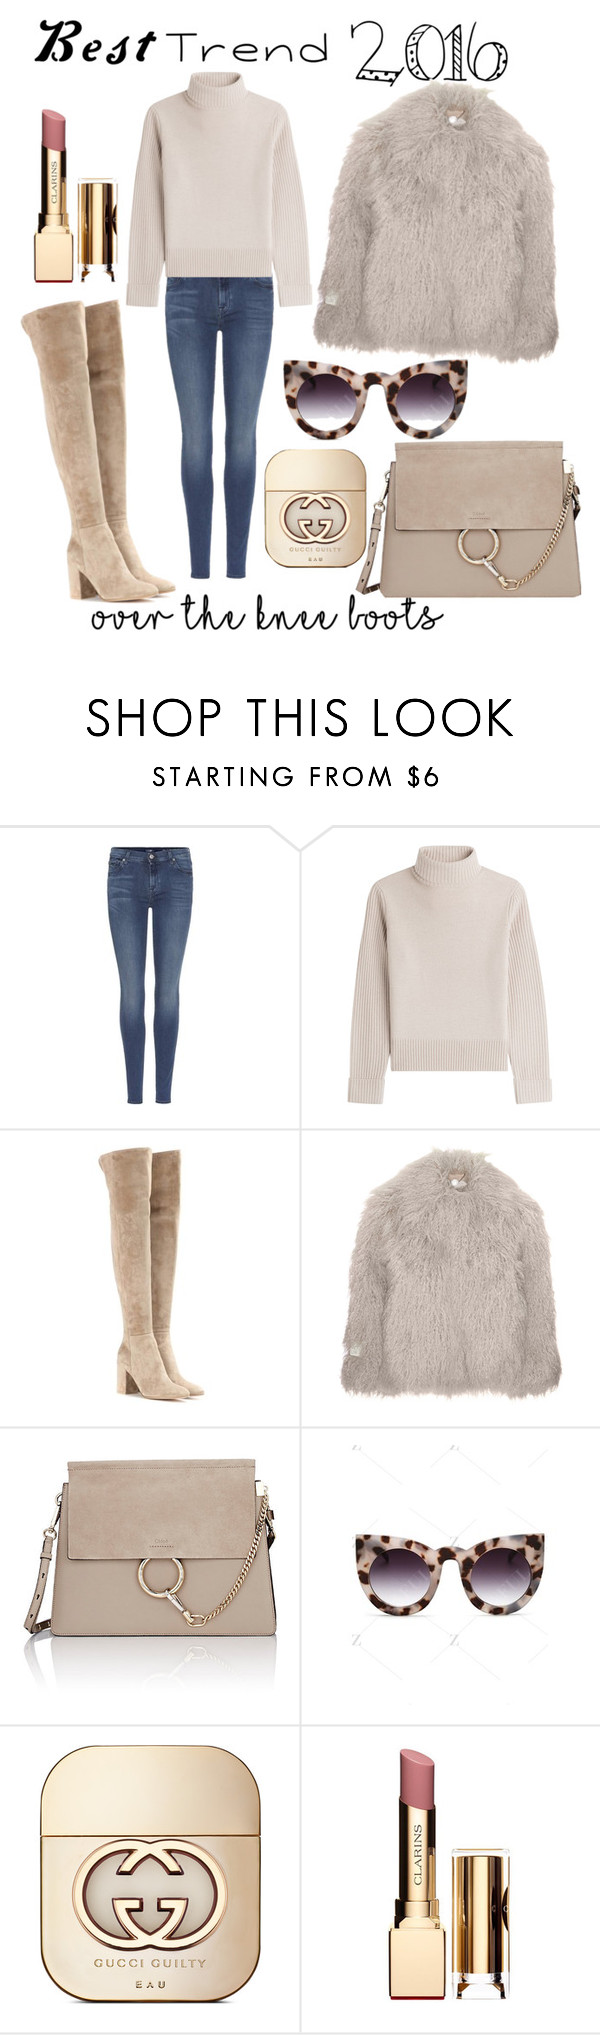 """""""Bootilisious"""" by ivka-detektivka ❤ liked on Polyvore featuring 7 For All Mankind, Vanessa Seward, Gianvito Rossi, STELLA McCARTNEY, Chloé, Gucci and Clarins"""